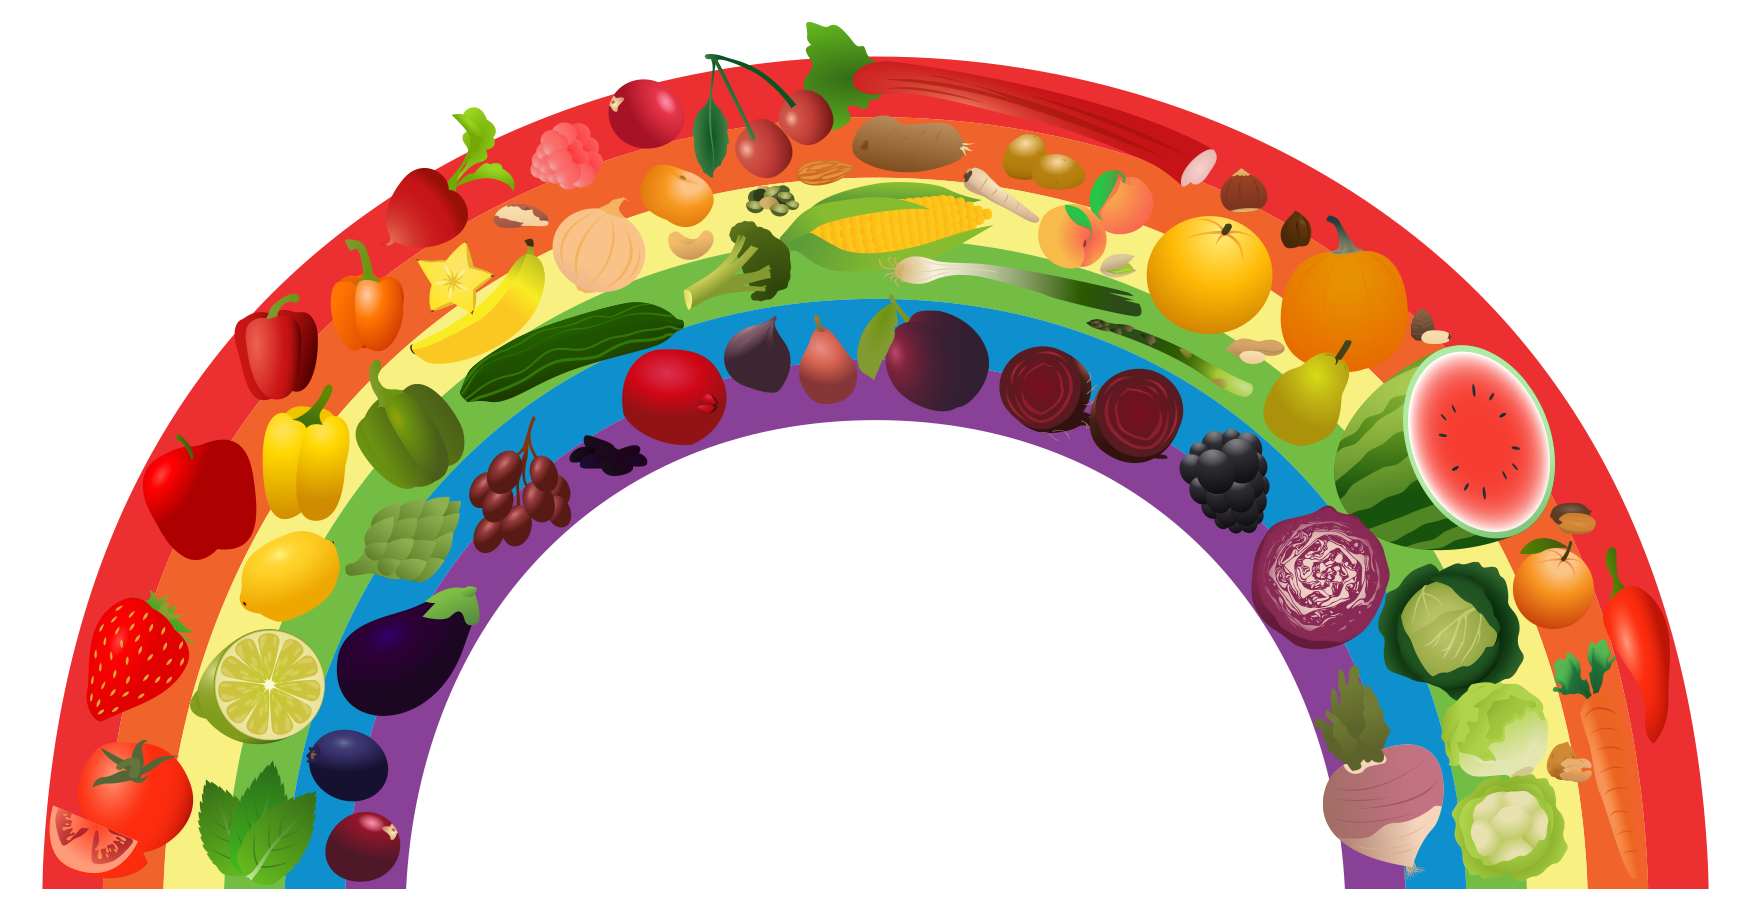 Exercise clipart food.  collection of healthy